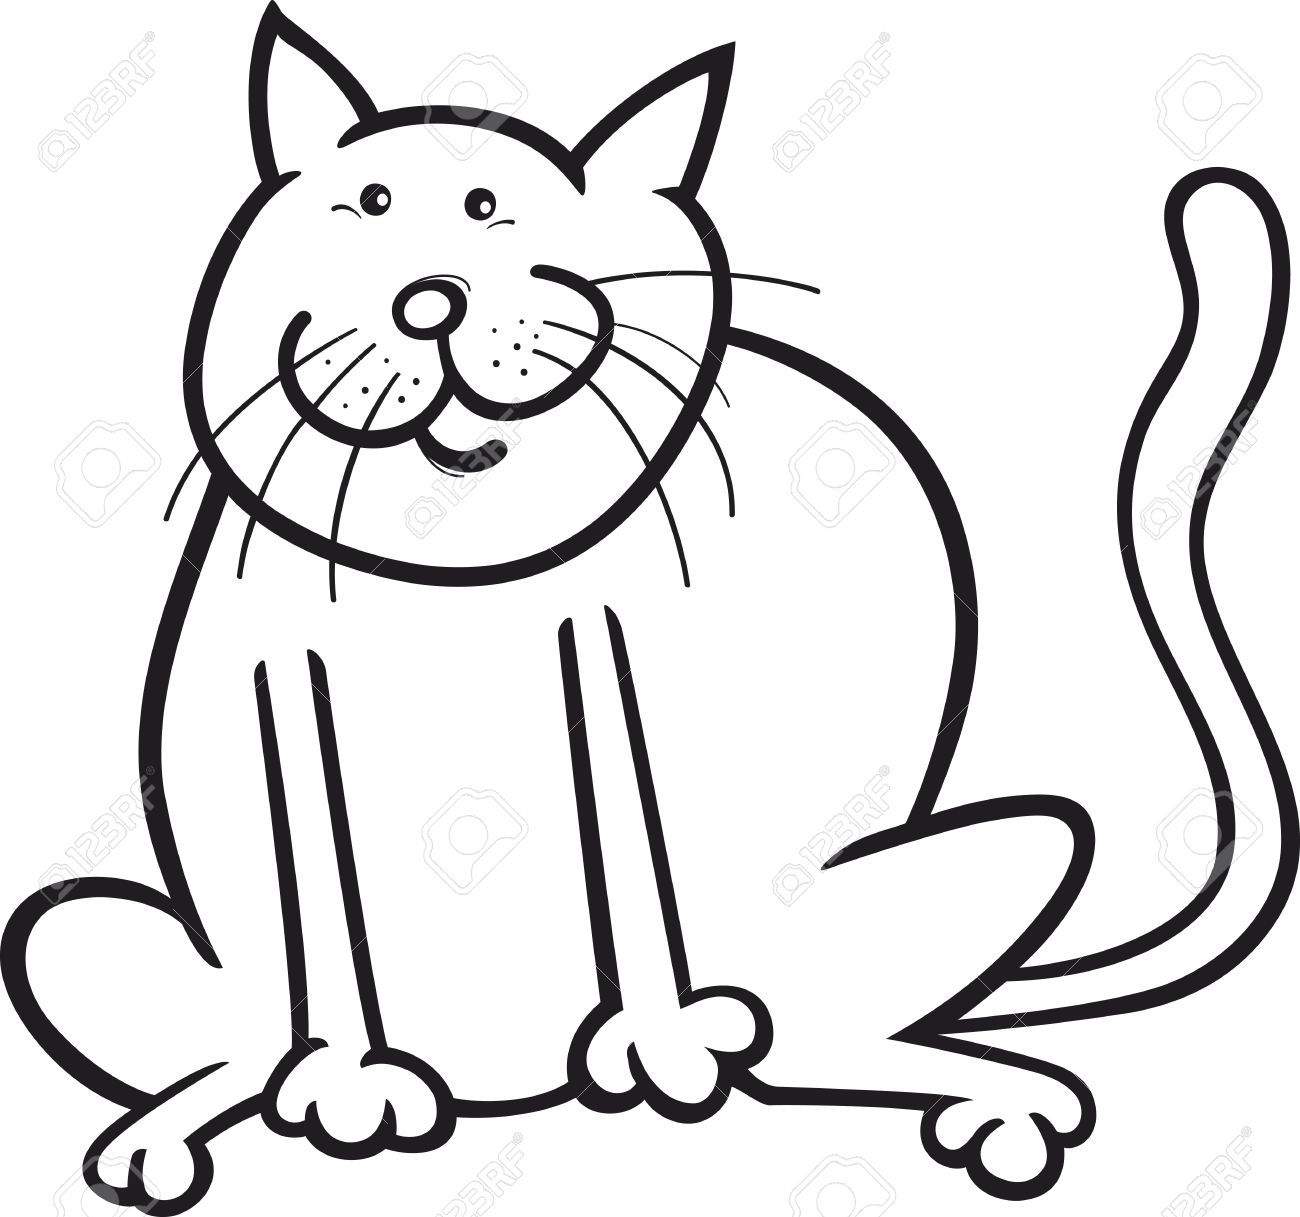 Cats Clipart Black And White